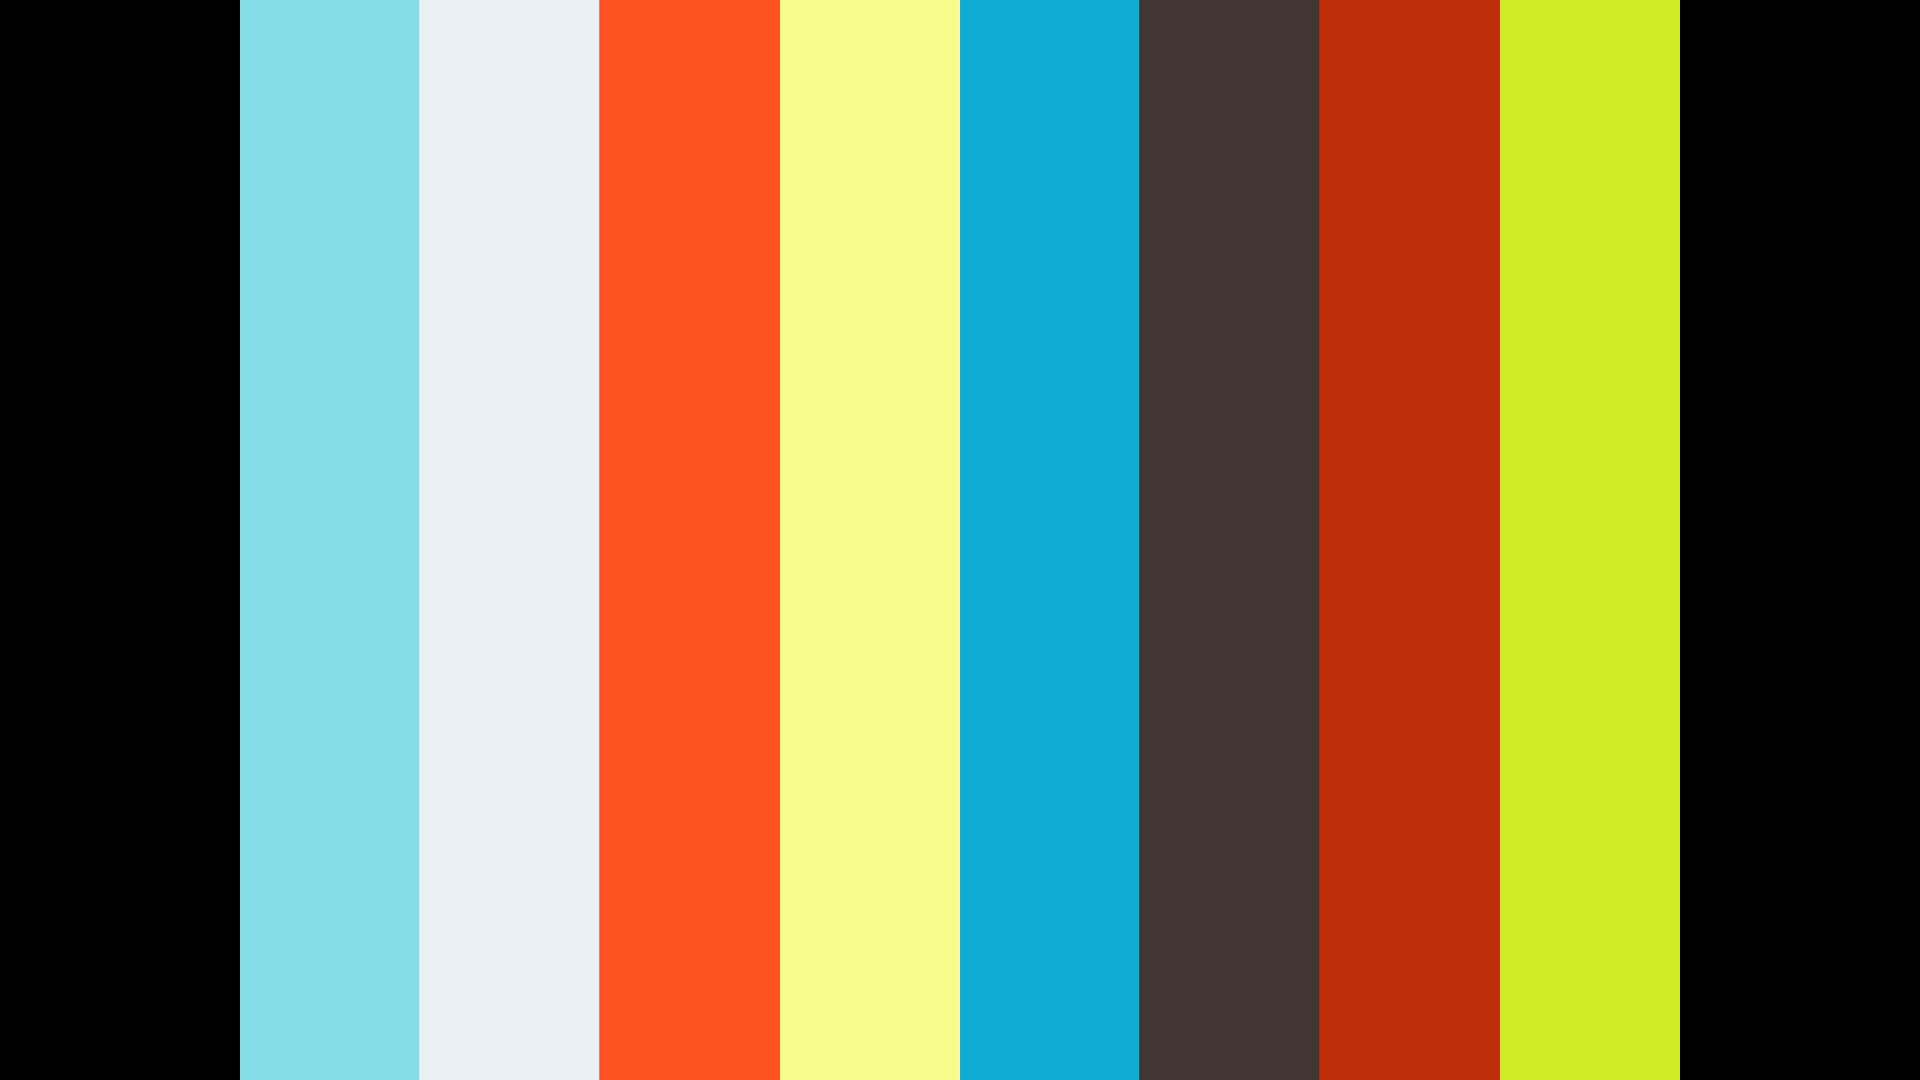 WOW - The Incredible Edible Egg